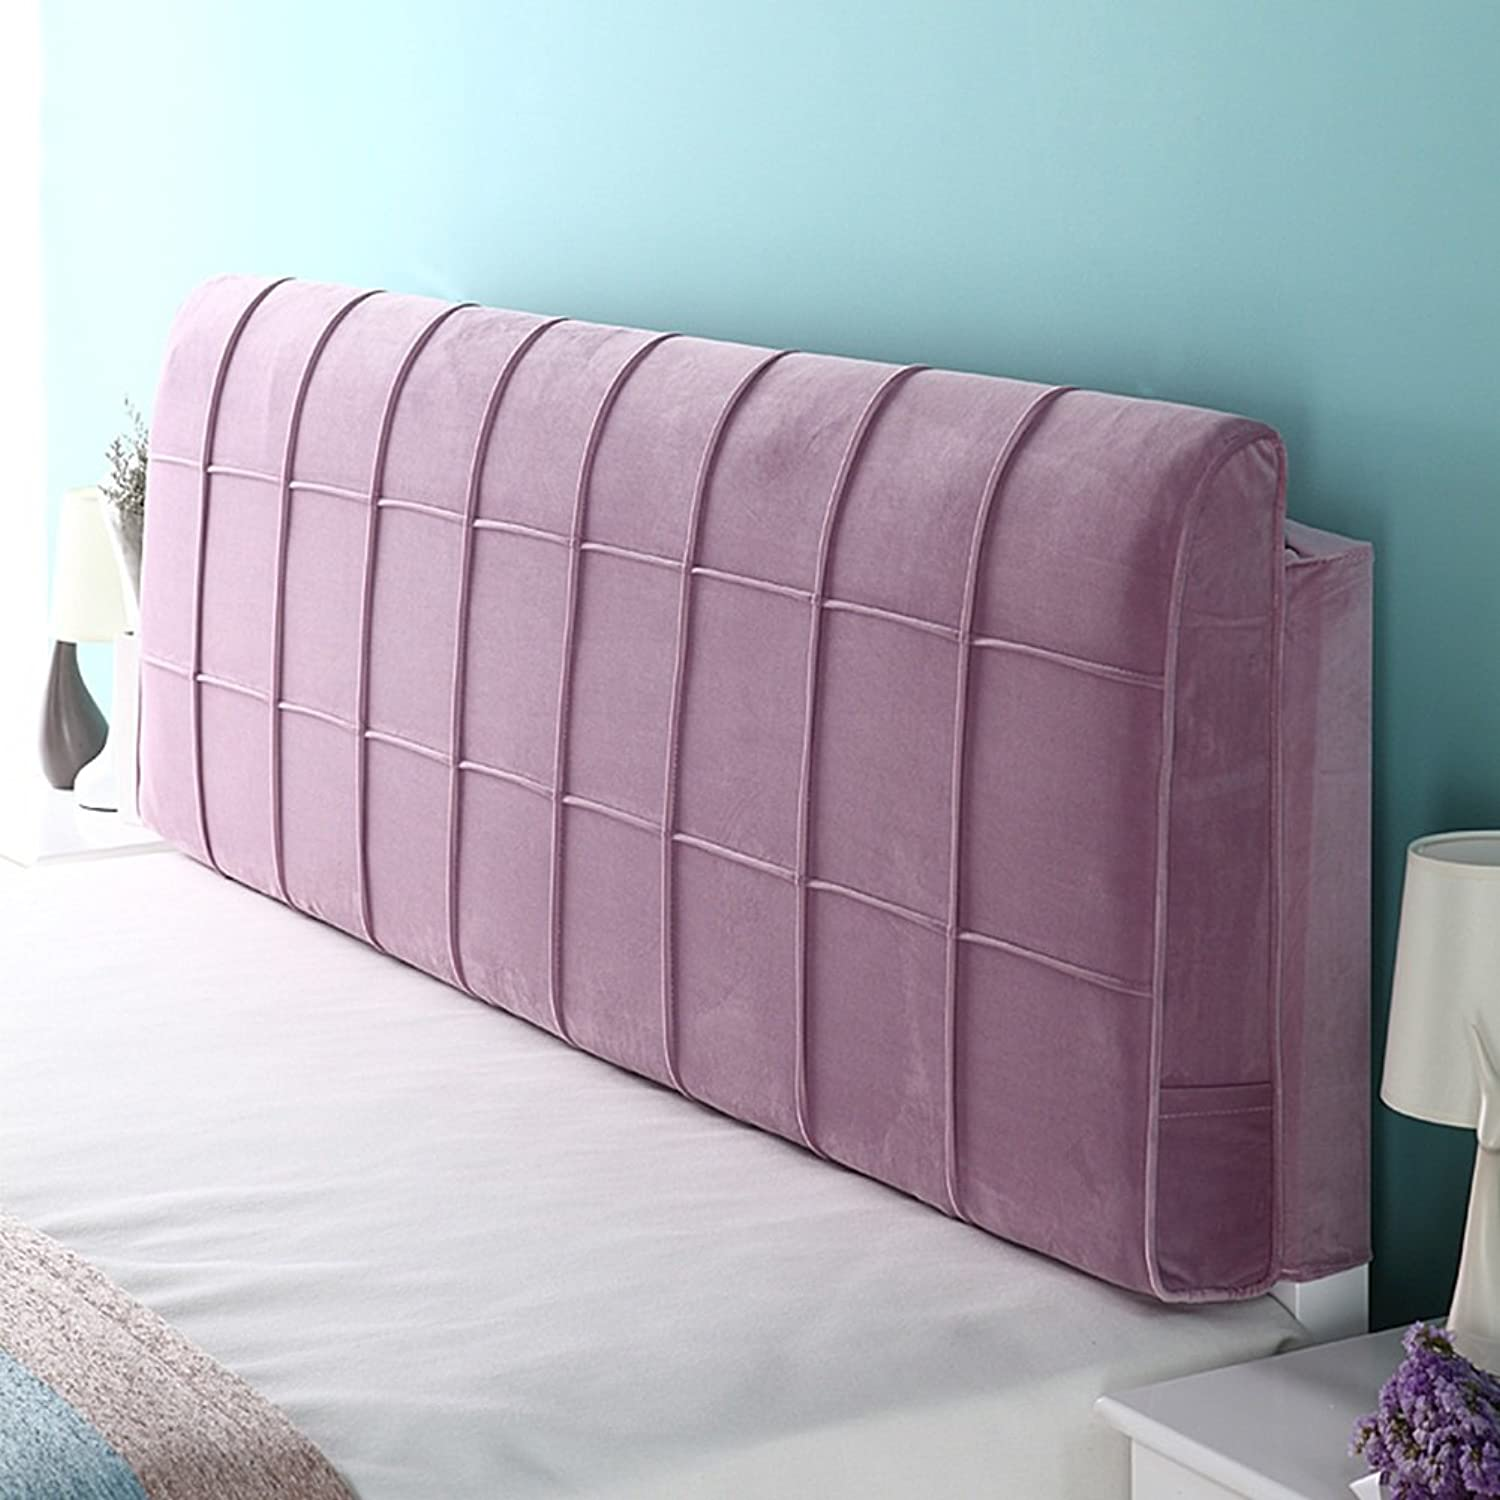 WENZHE Upholstered Fabric Headboard Bedside Cushion Pads Cover Bed Wedges Backrest Waist Pad Large Back Multifunction Cloth Art Soft Case Anti-collision Head, There Is Headboard   No Headboard, 4 colors, 6 Sizes ( color   1  , Size   With headboard-70cm )